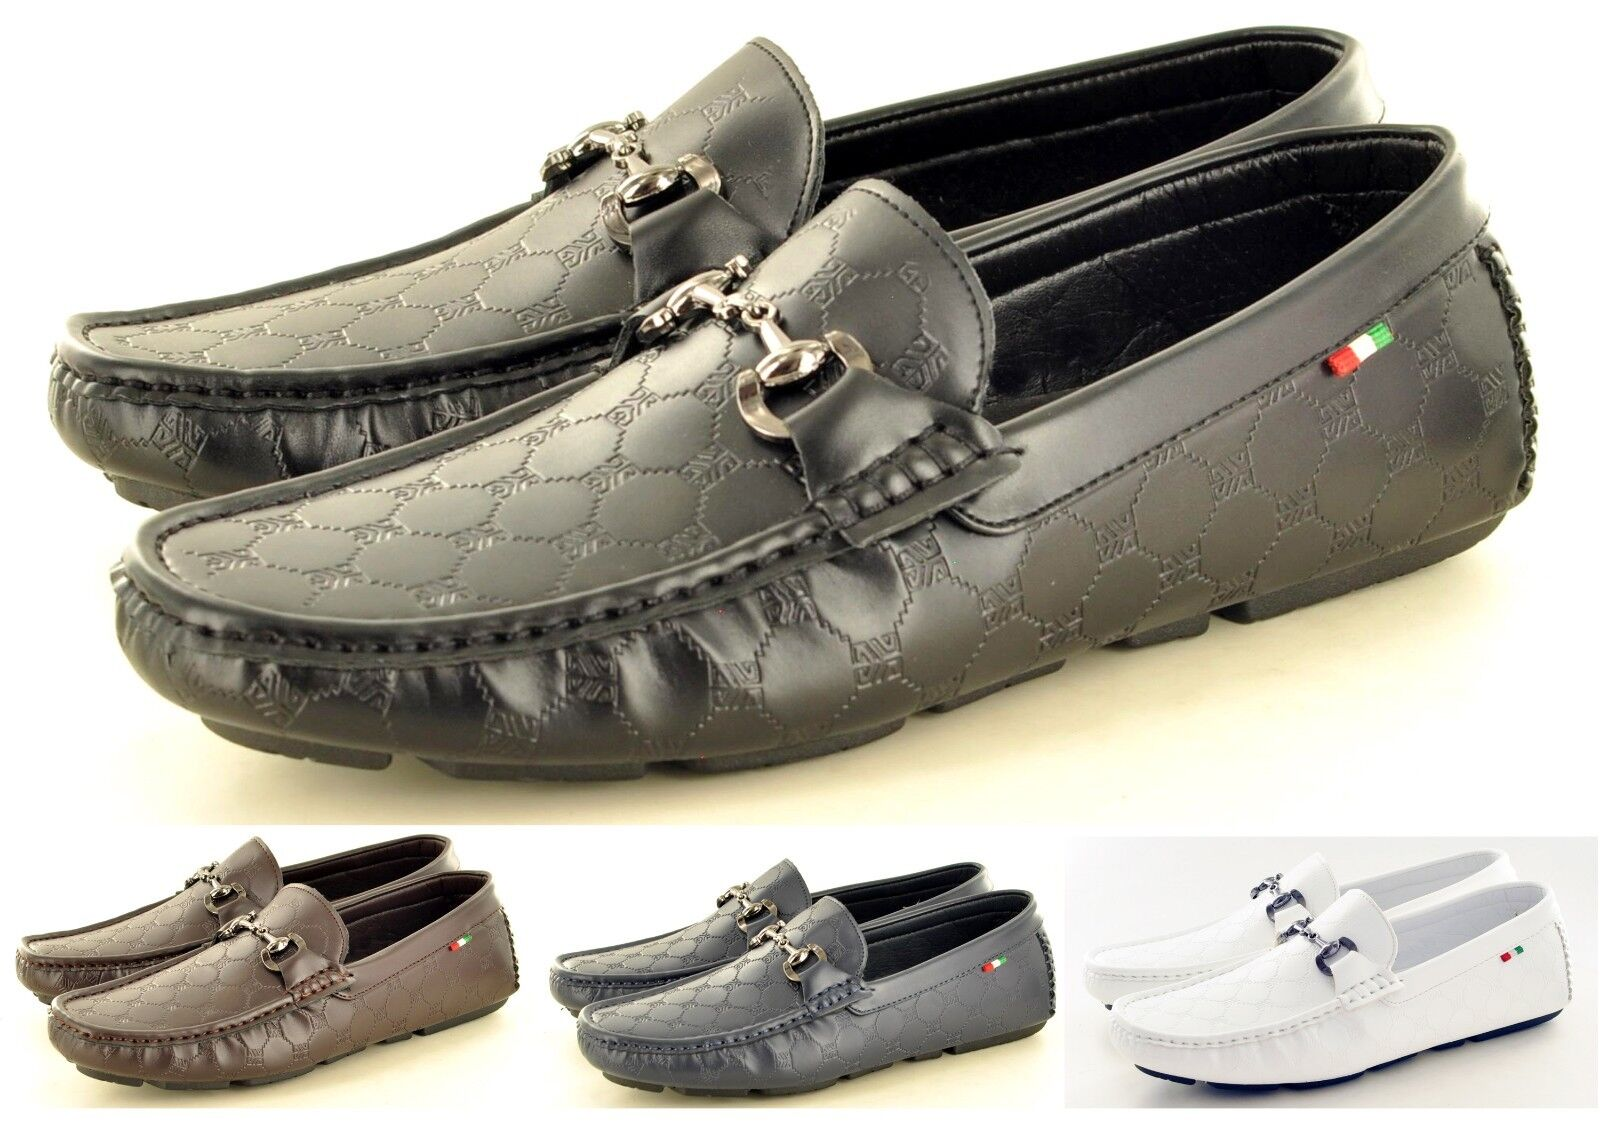 New Mens leather LOOK Casual Shoes Loafers Moccasins Slip on Shoes Casual Avail UK Sizes 6-11 338547